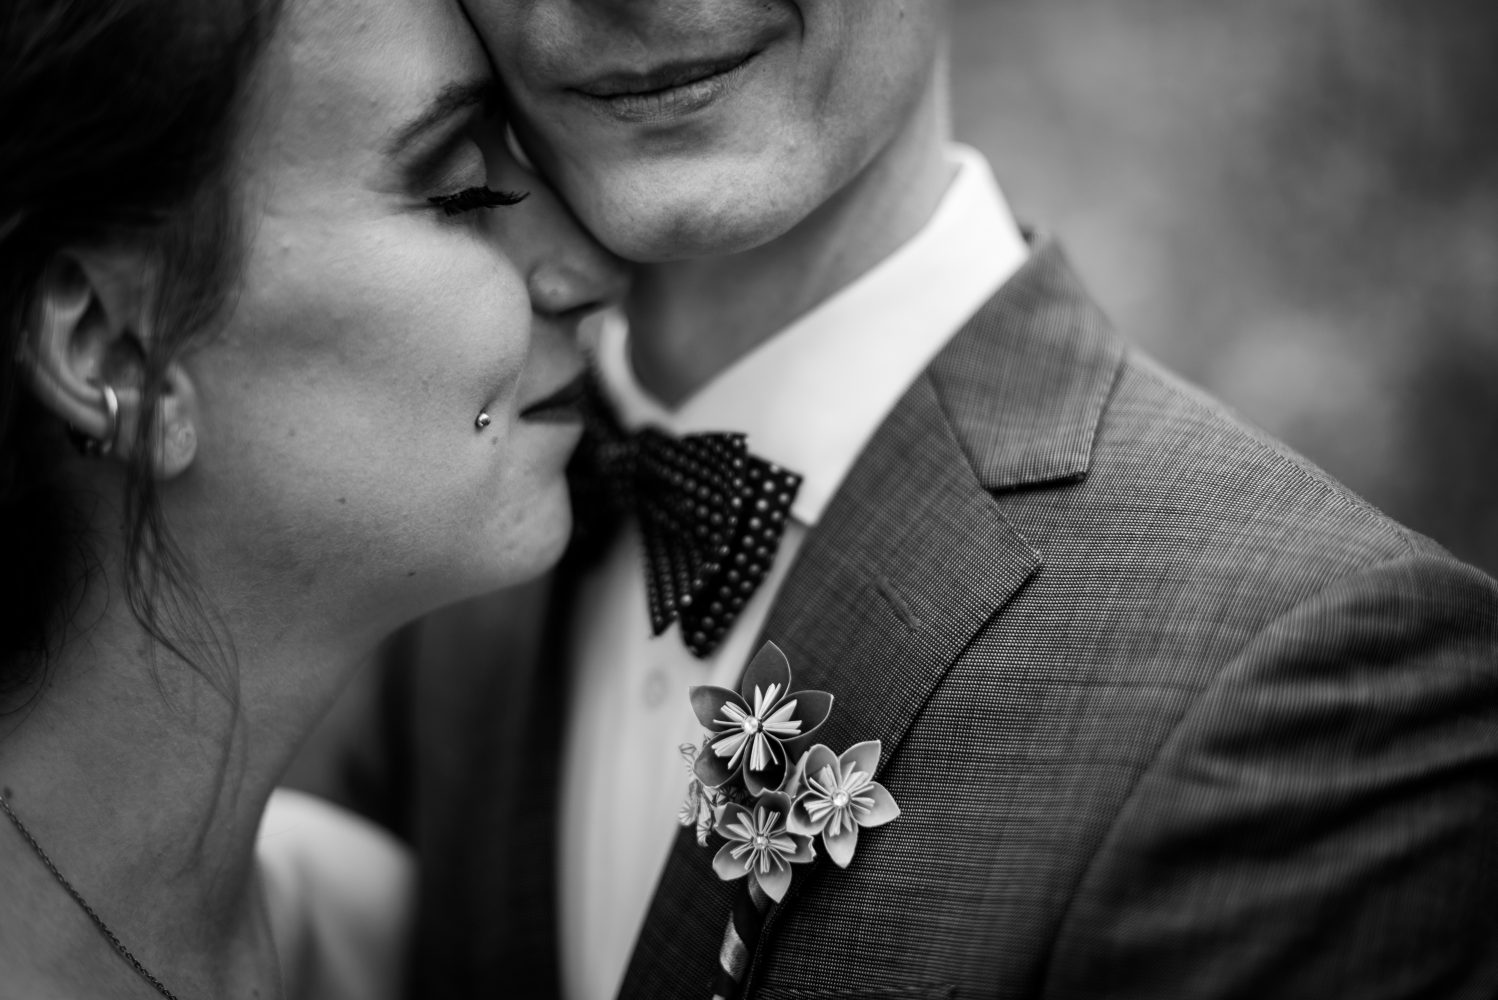 DIY wedding details of the Boutinaire on the groom all handmade for their wedding at Rundles Mission on Pigeon Lake Alberta | 3Haus Photographics